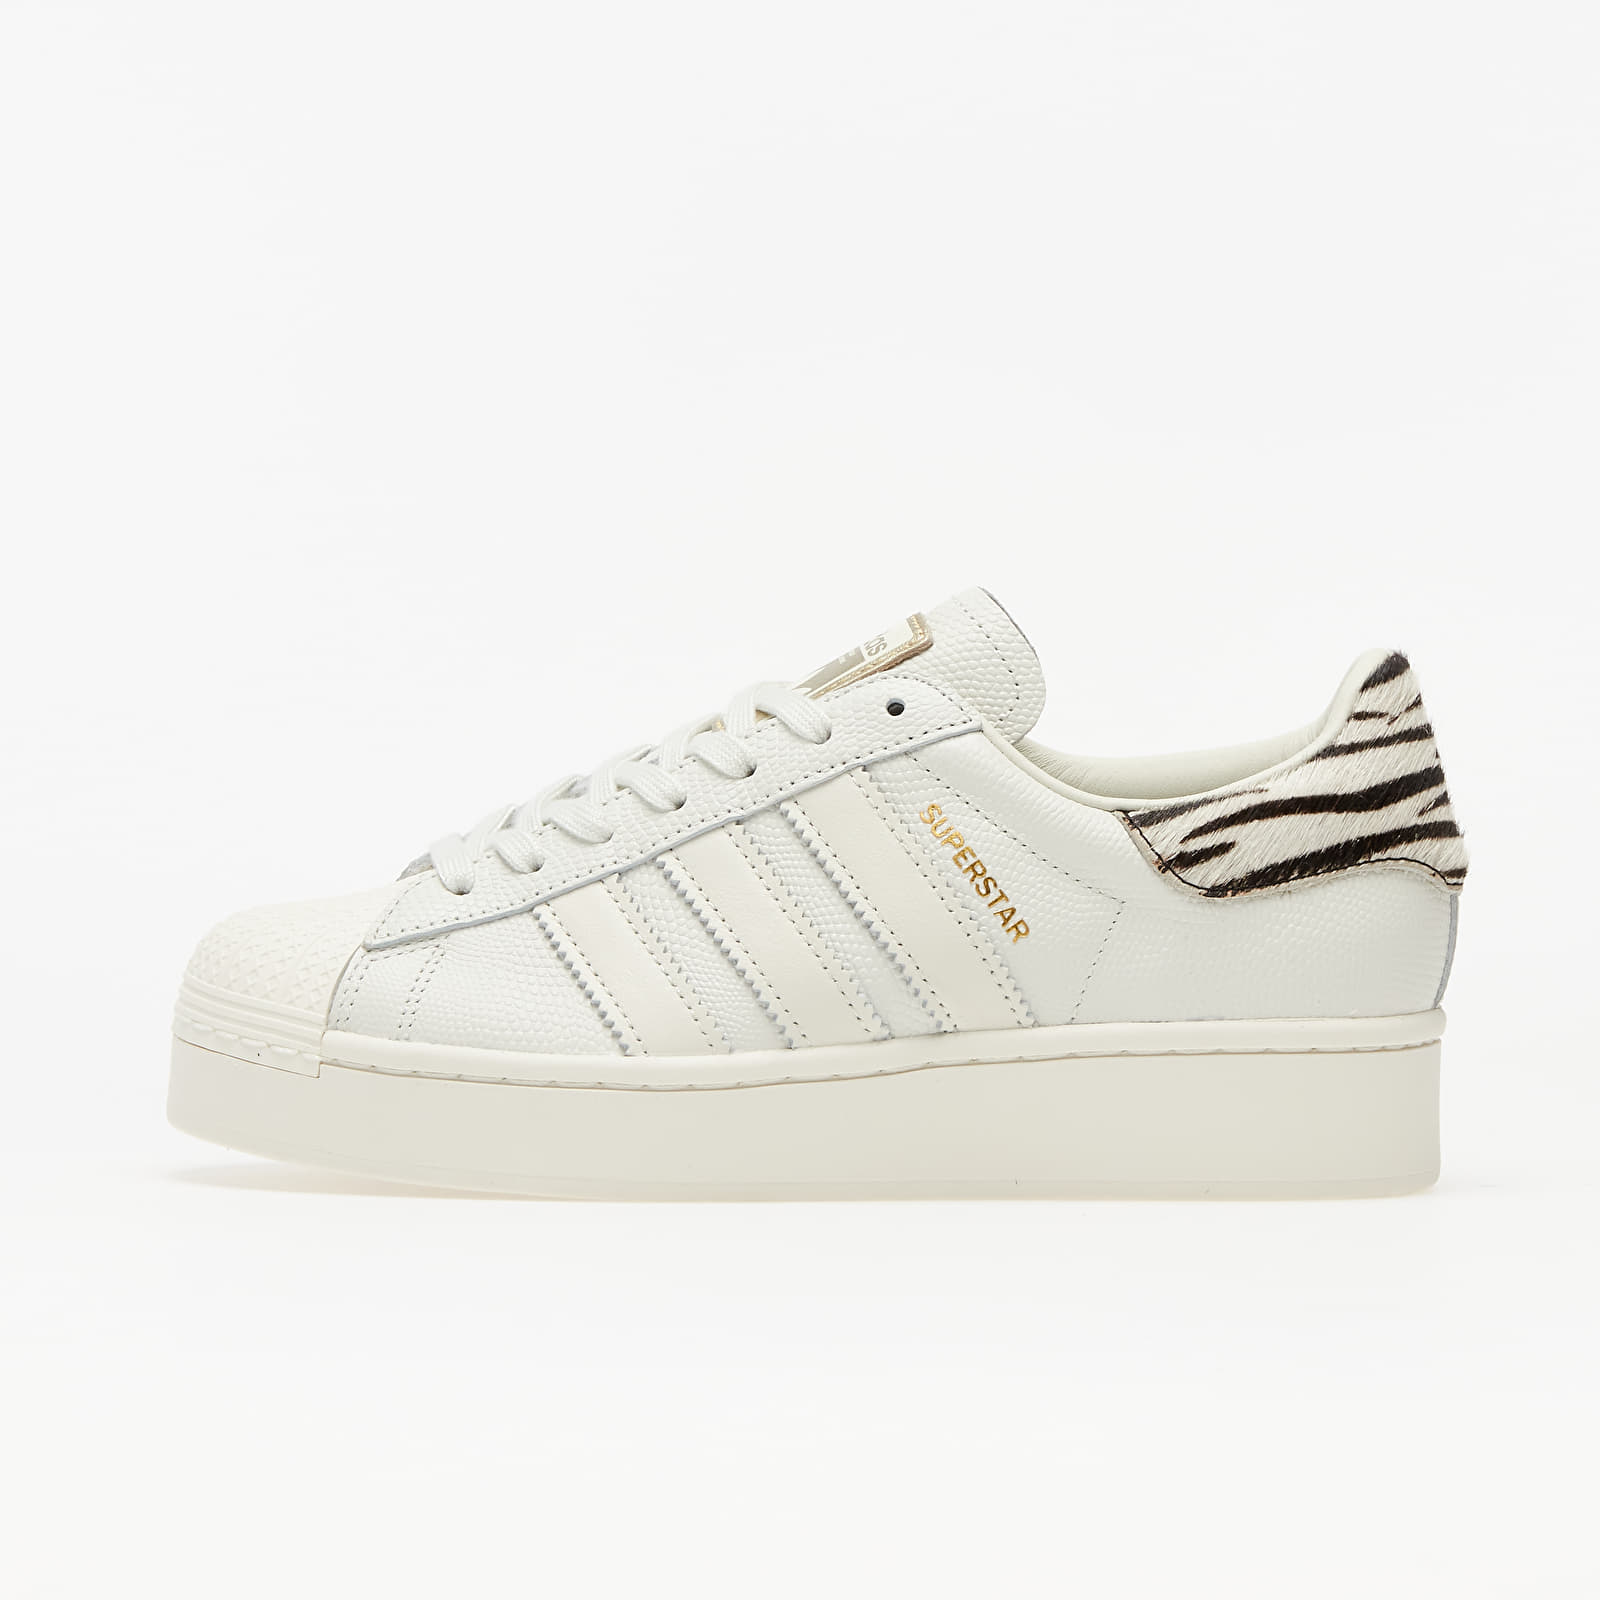 adidas Superstar Bold W White Tint/ Off White/ Core Black EUR 39 1/3